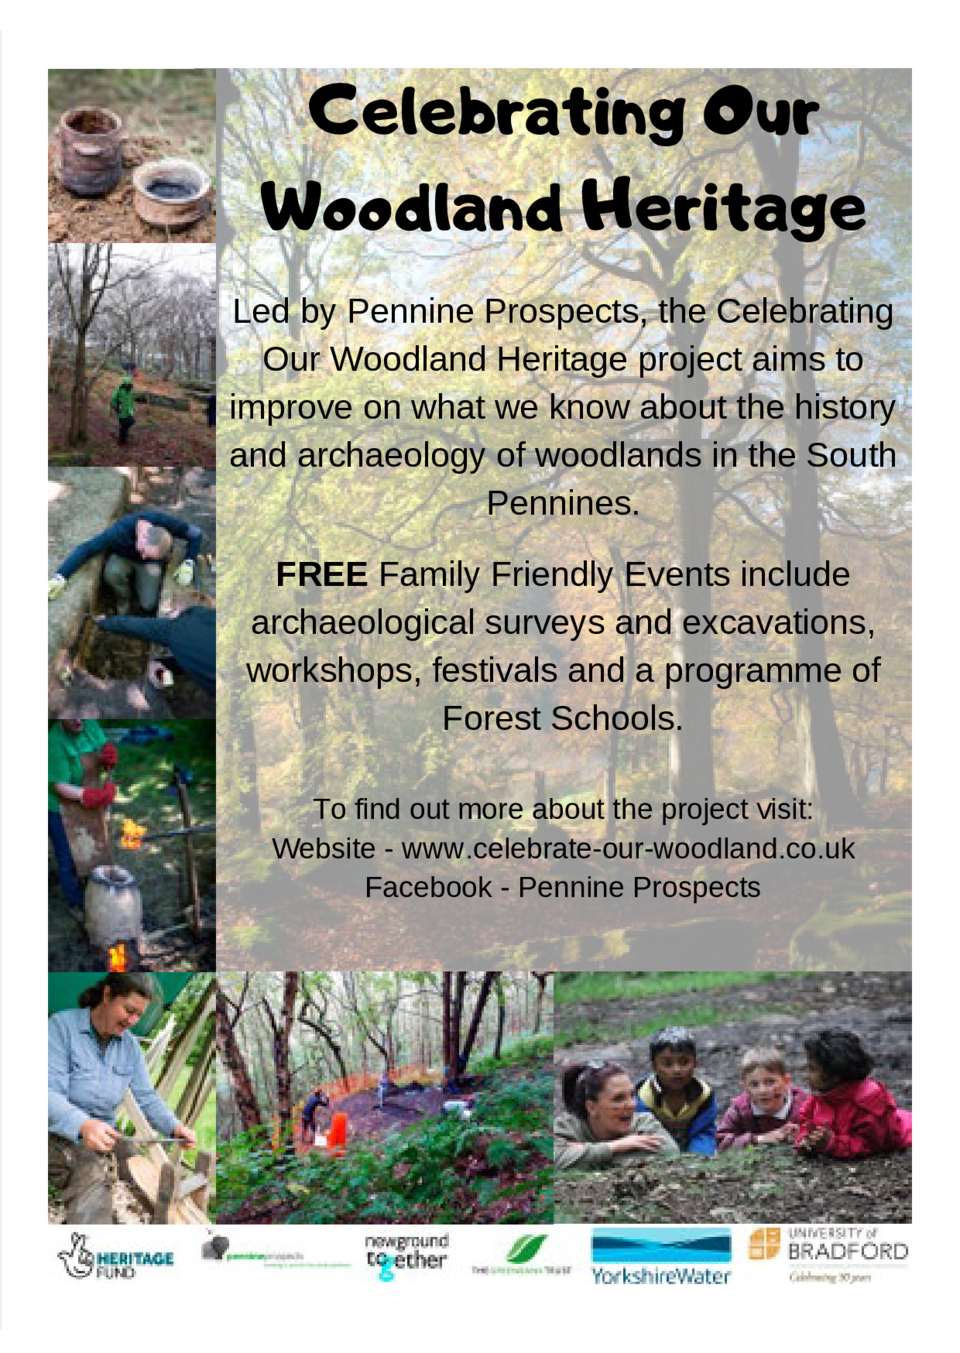 Celebrating Our Woodland Heritage Led by Pennine Prospects, the Celebrating Our Woodland Heritage project aims to improve ...